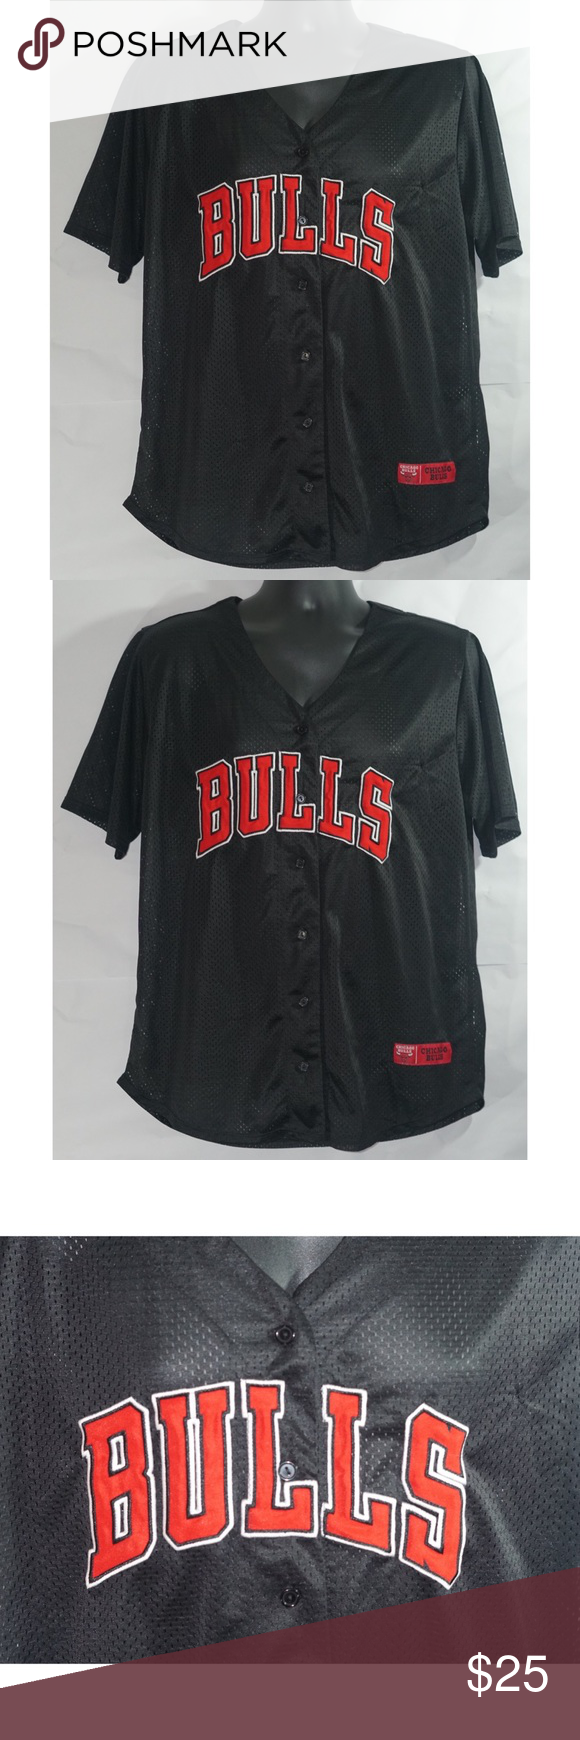 Chicago Bulls Nba Baseball Jersey Red Black Size L Nba Shirts Clothes Design Black And Red